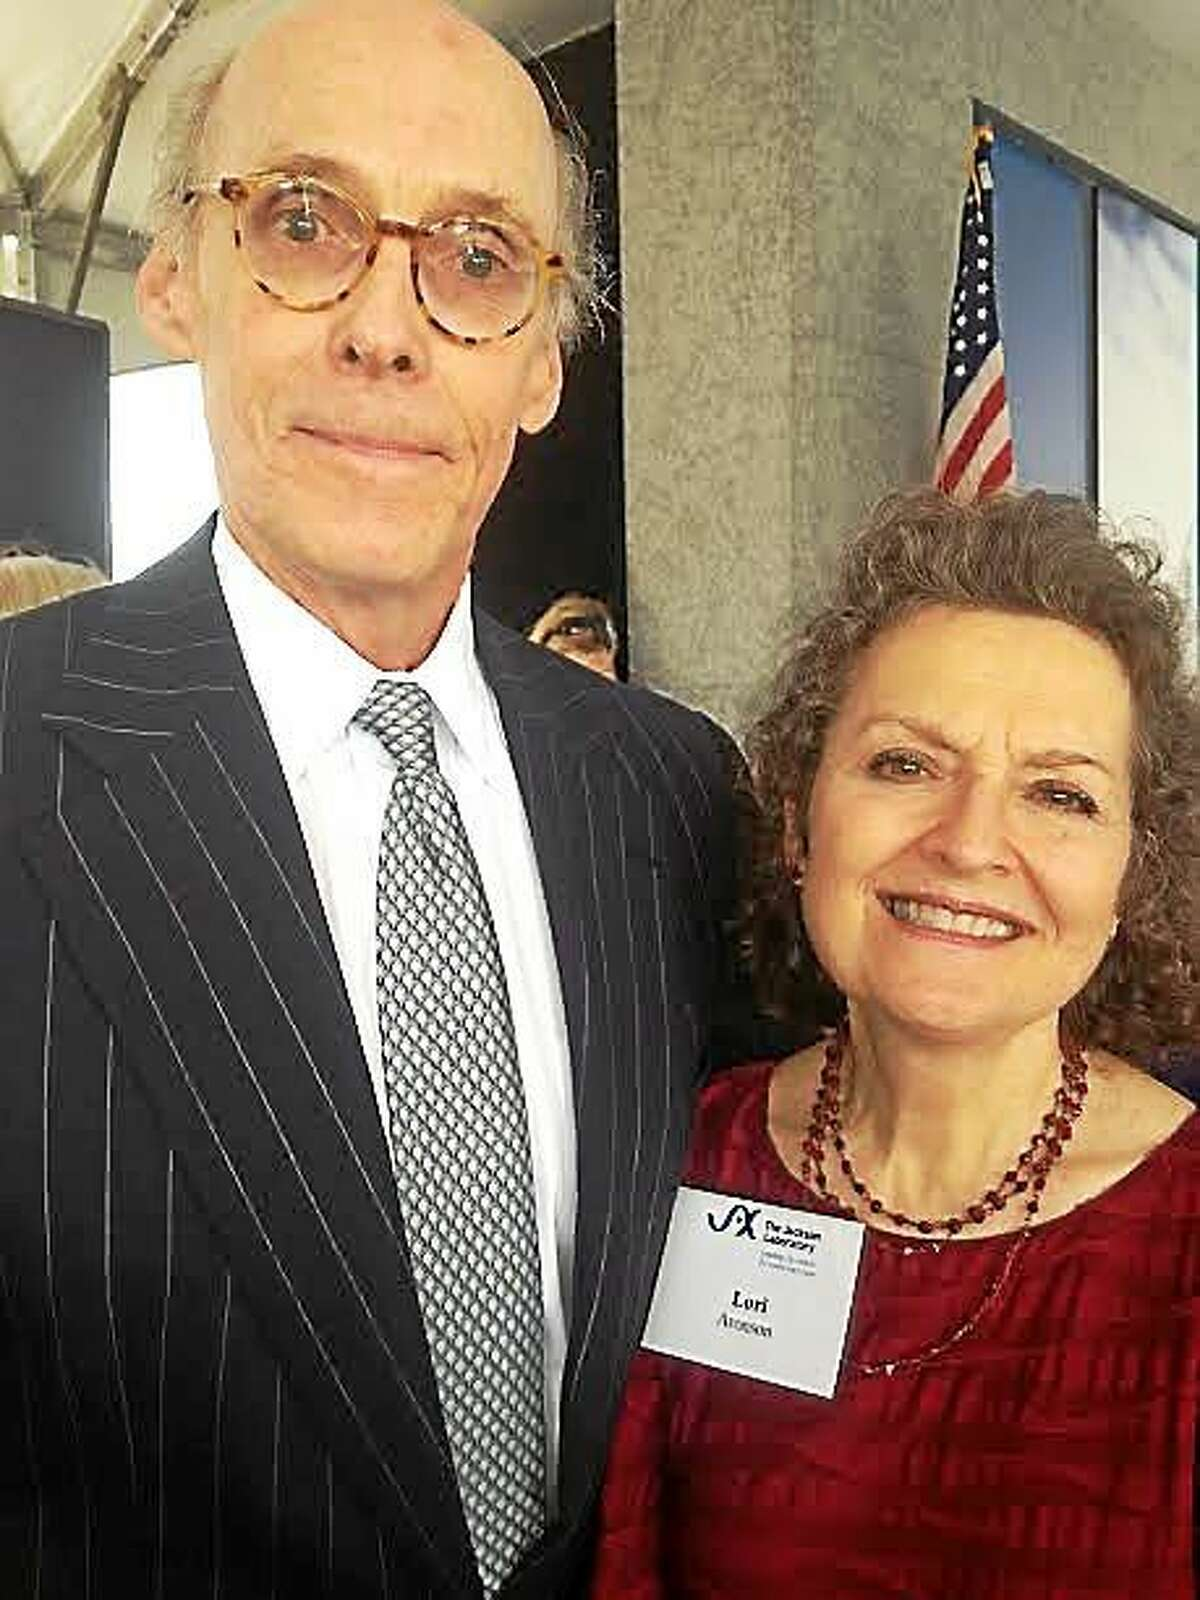 Tim Bannon, former chief of staff to Malloy and his wife, Lorraine Aronson, who first noticed Jackson Laboratory was looking for a partner.